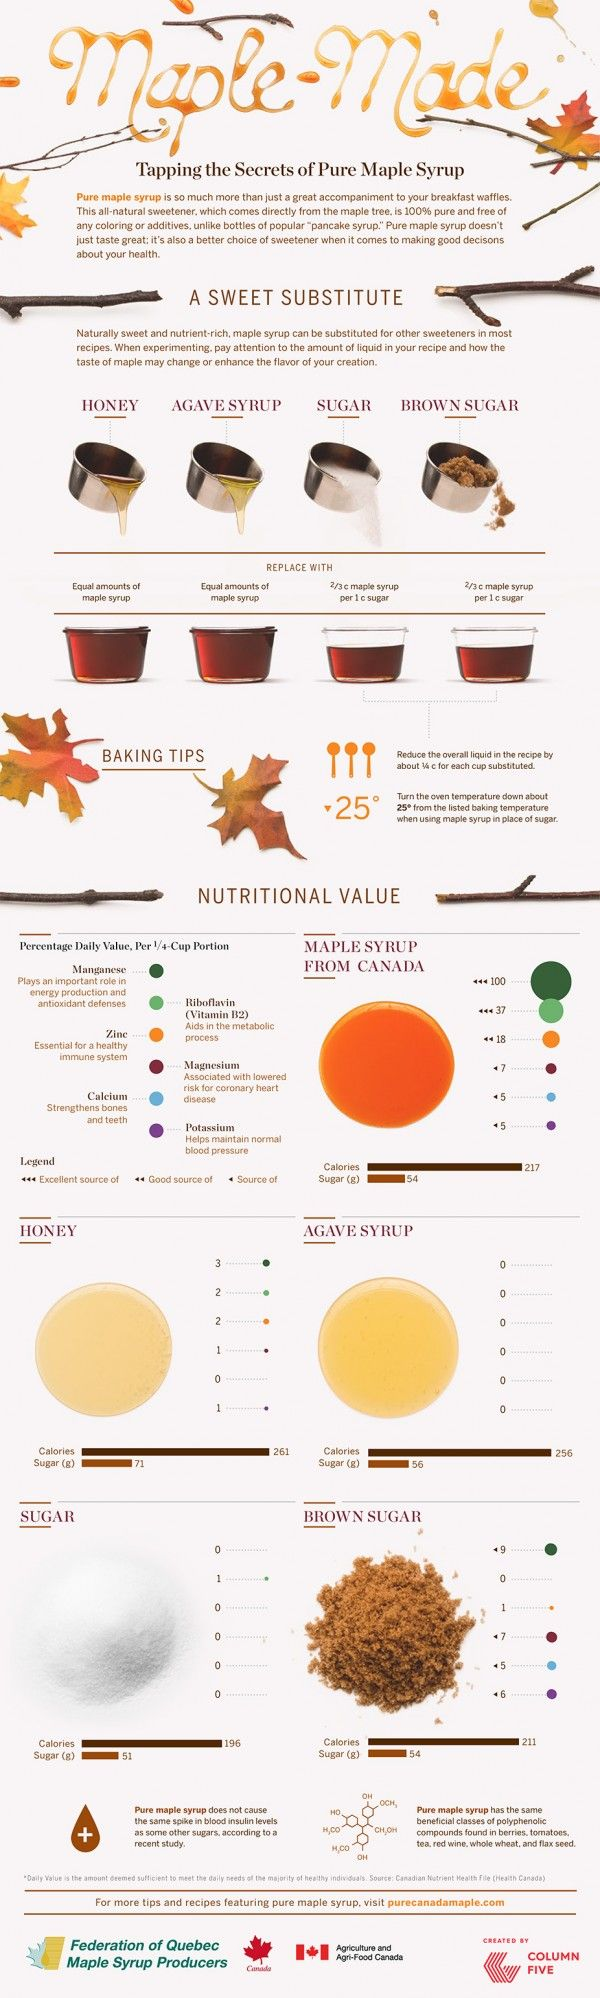 Visualizing the Health Benefits of Pure Maple Syrup, and it's Dramatic